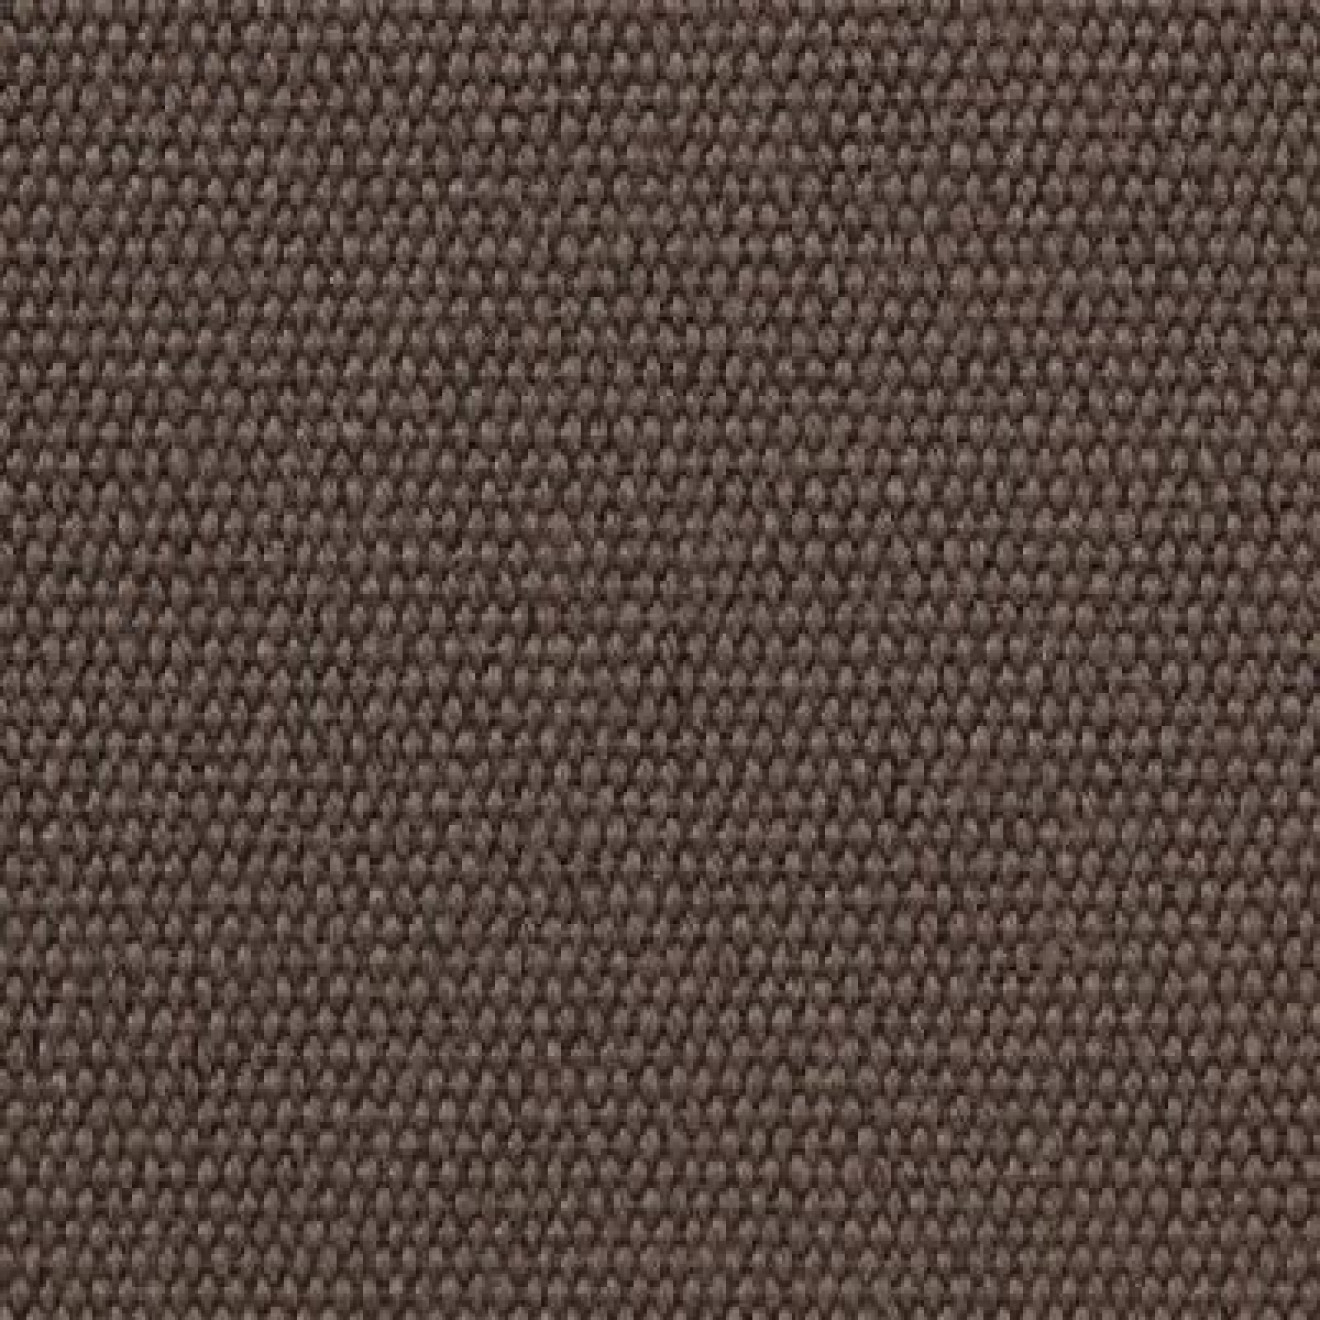 Rolle - Acrylstoff 20 Taupe